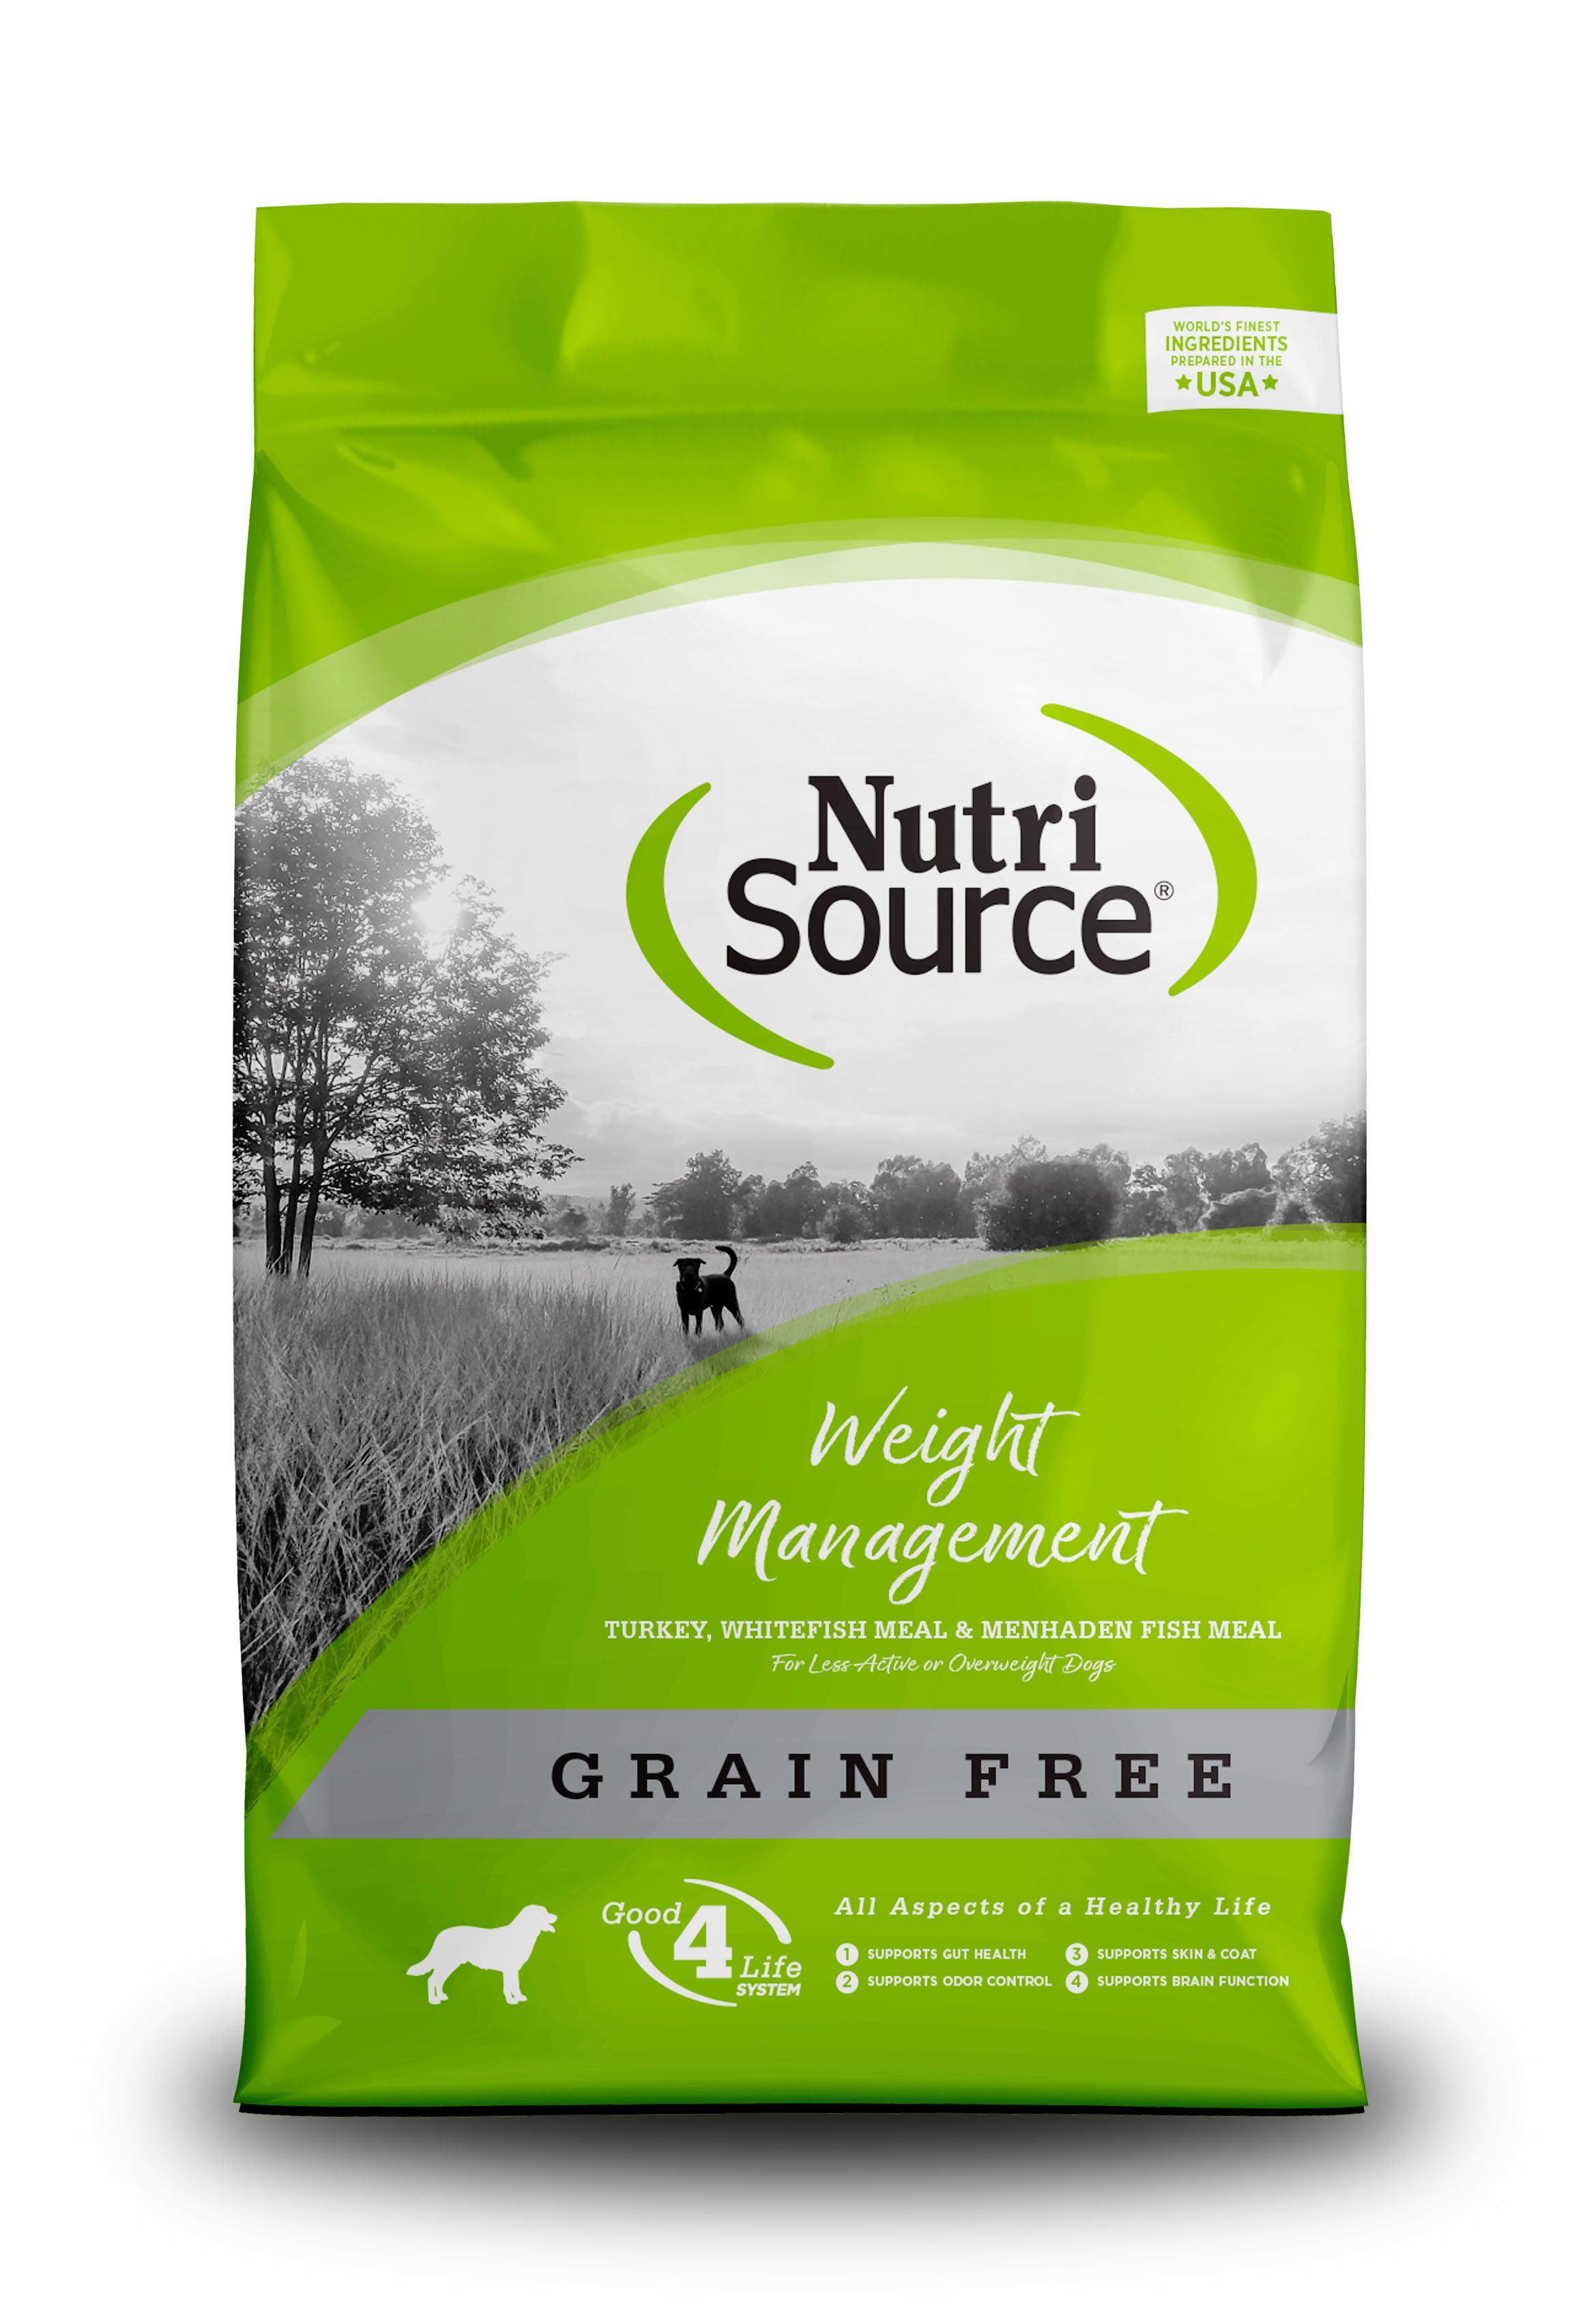 NutriSource Grain Free Weight Management Dry Dog Food Image